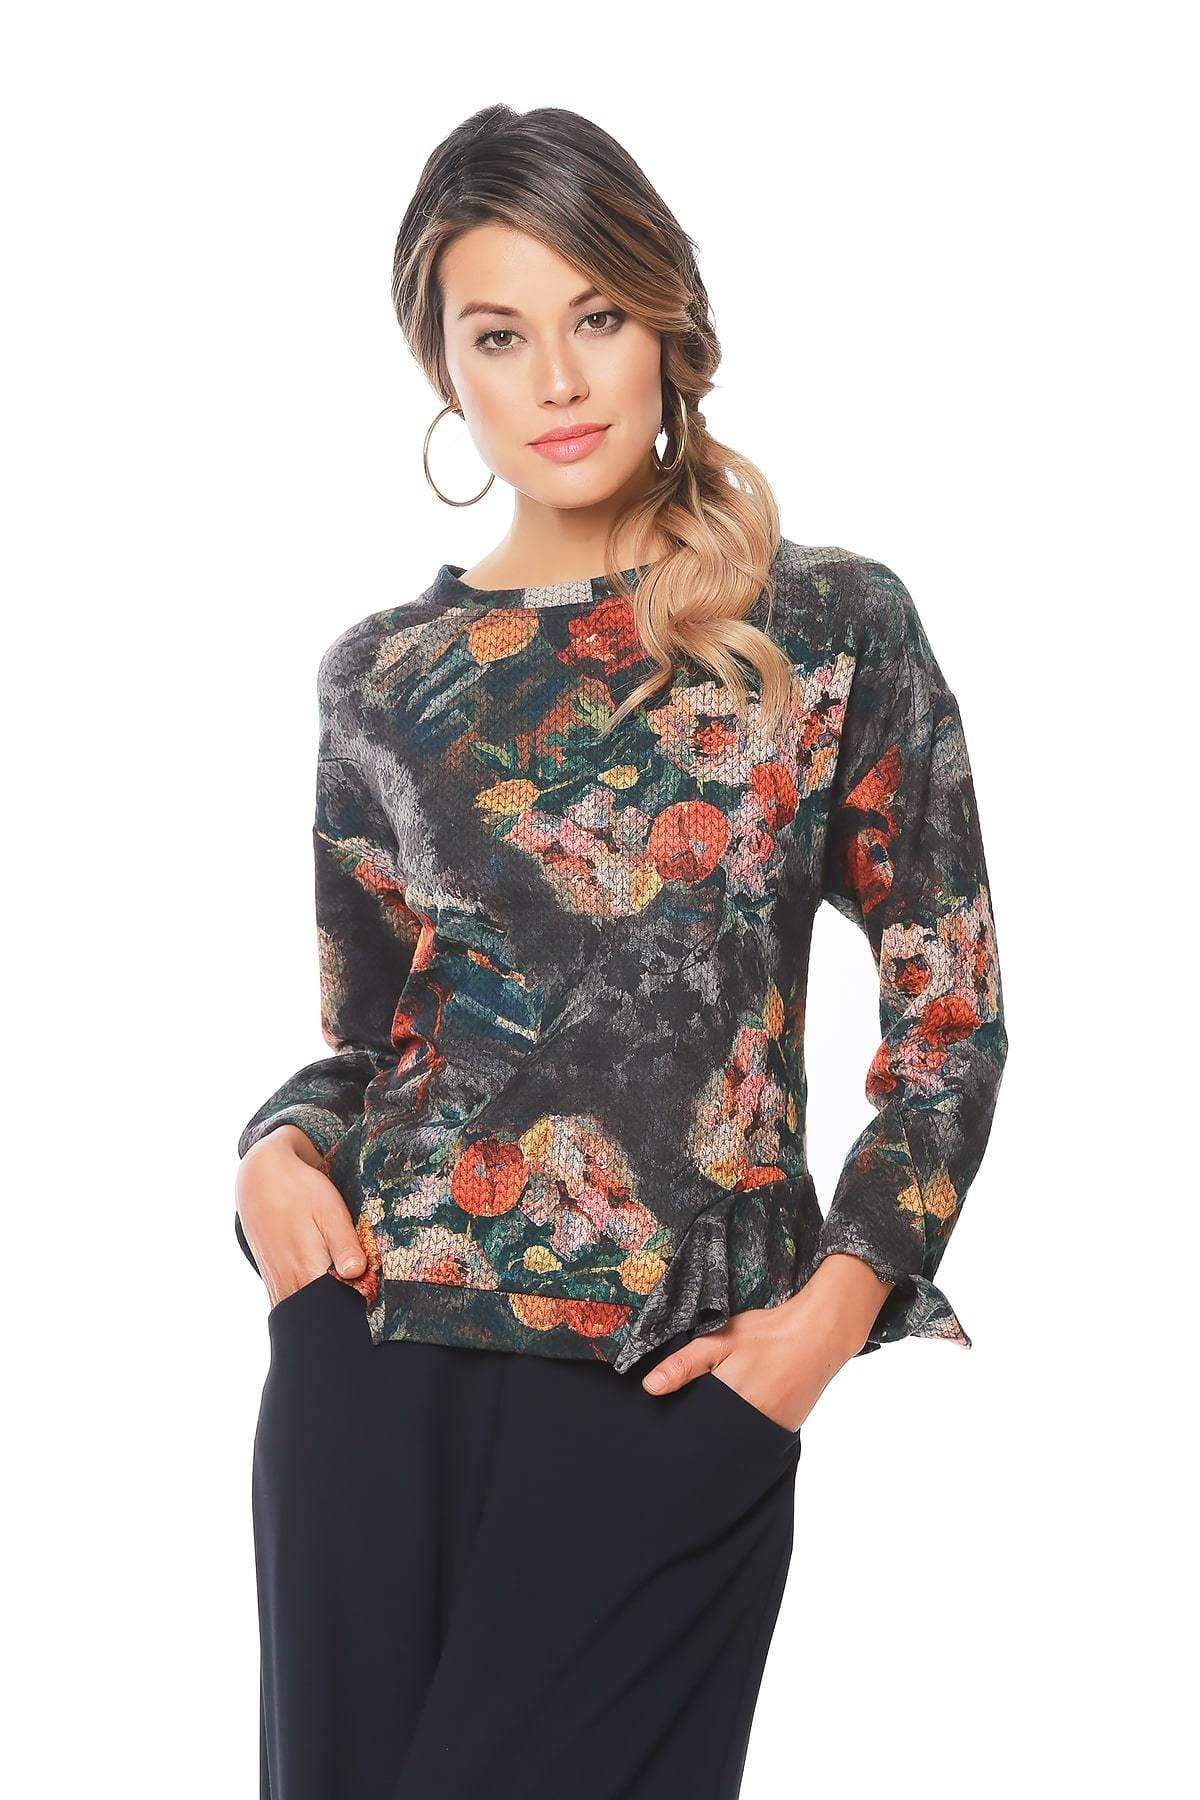 Eva Franco Top Martine Top in Monet